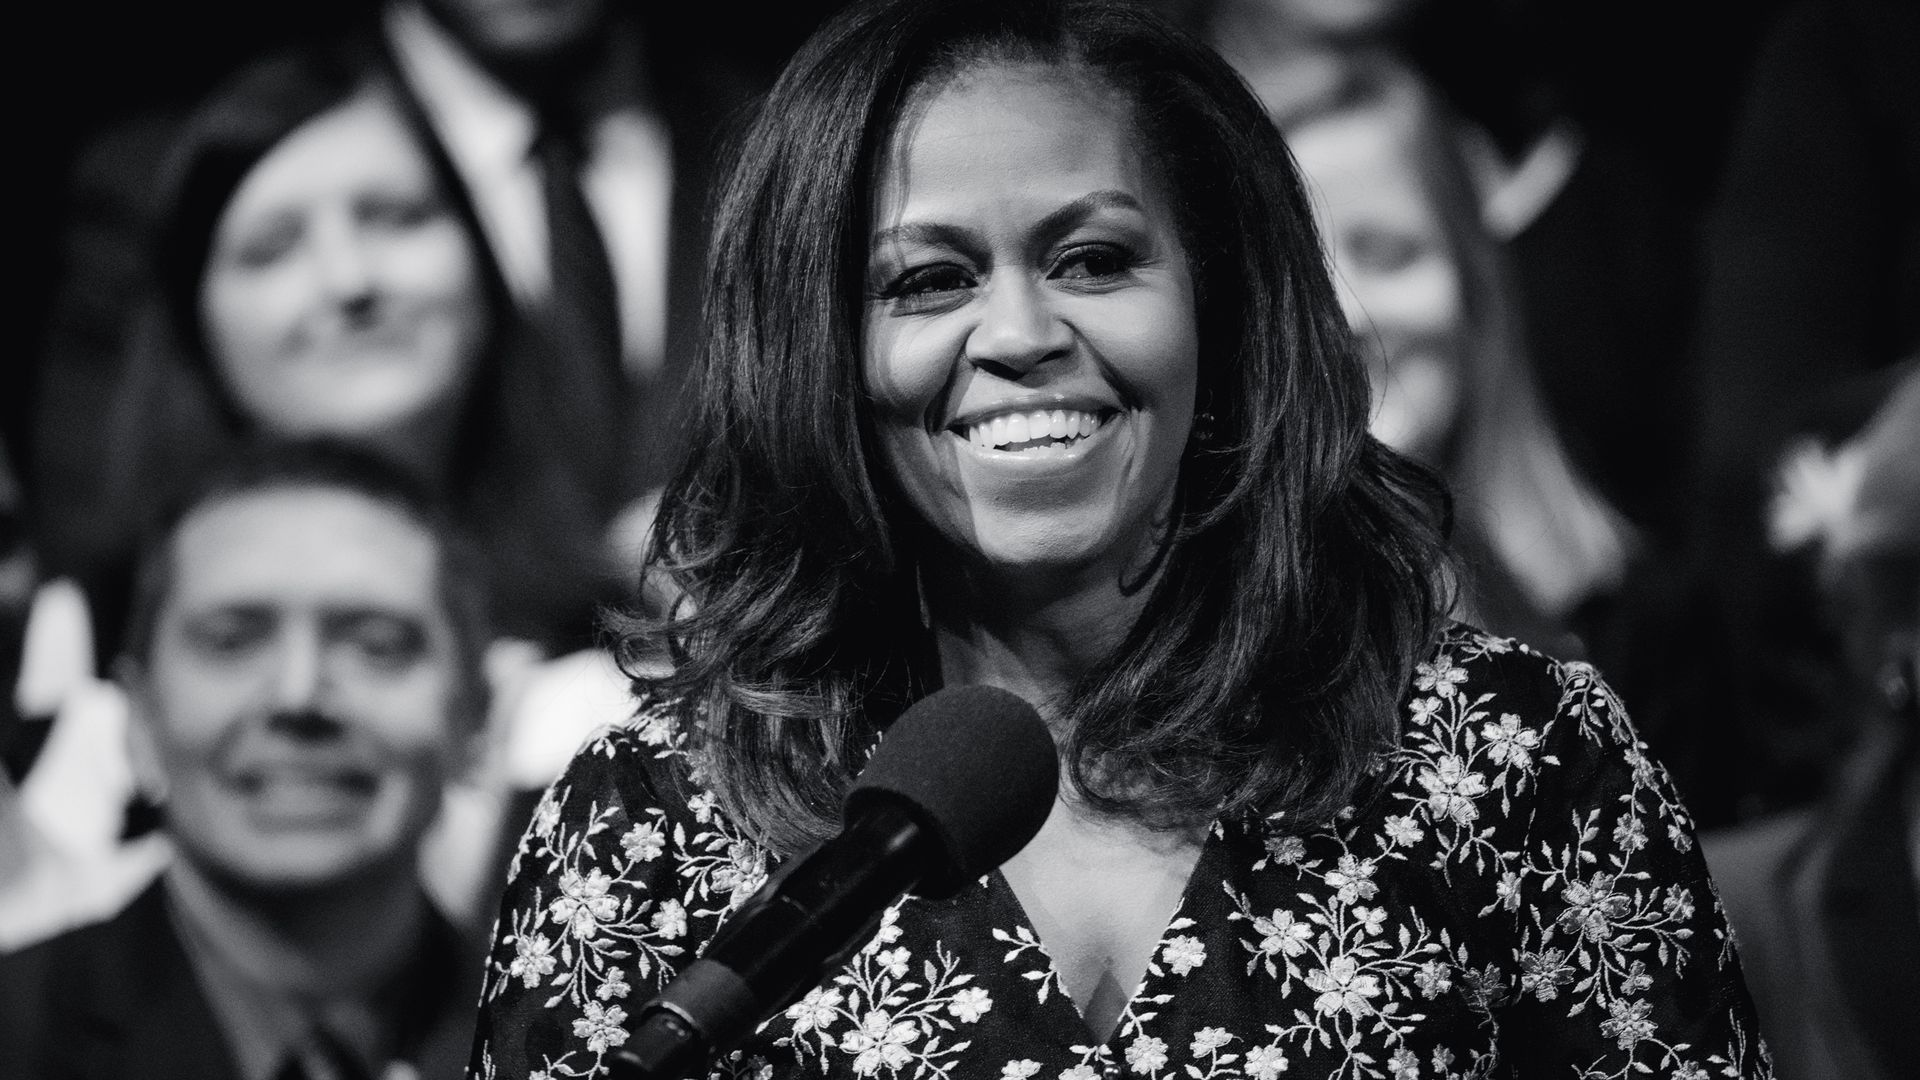 1920x1080 - Michelle Obama Wallpapers 29